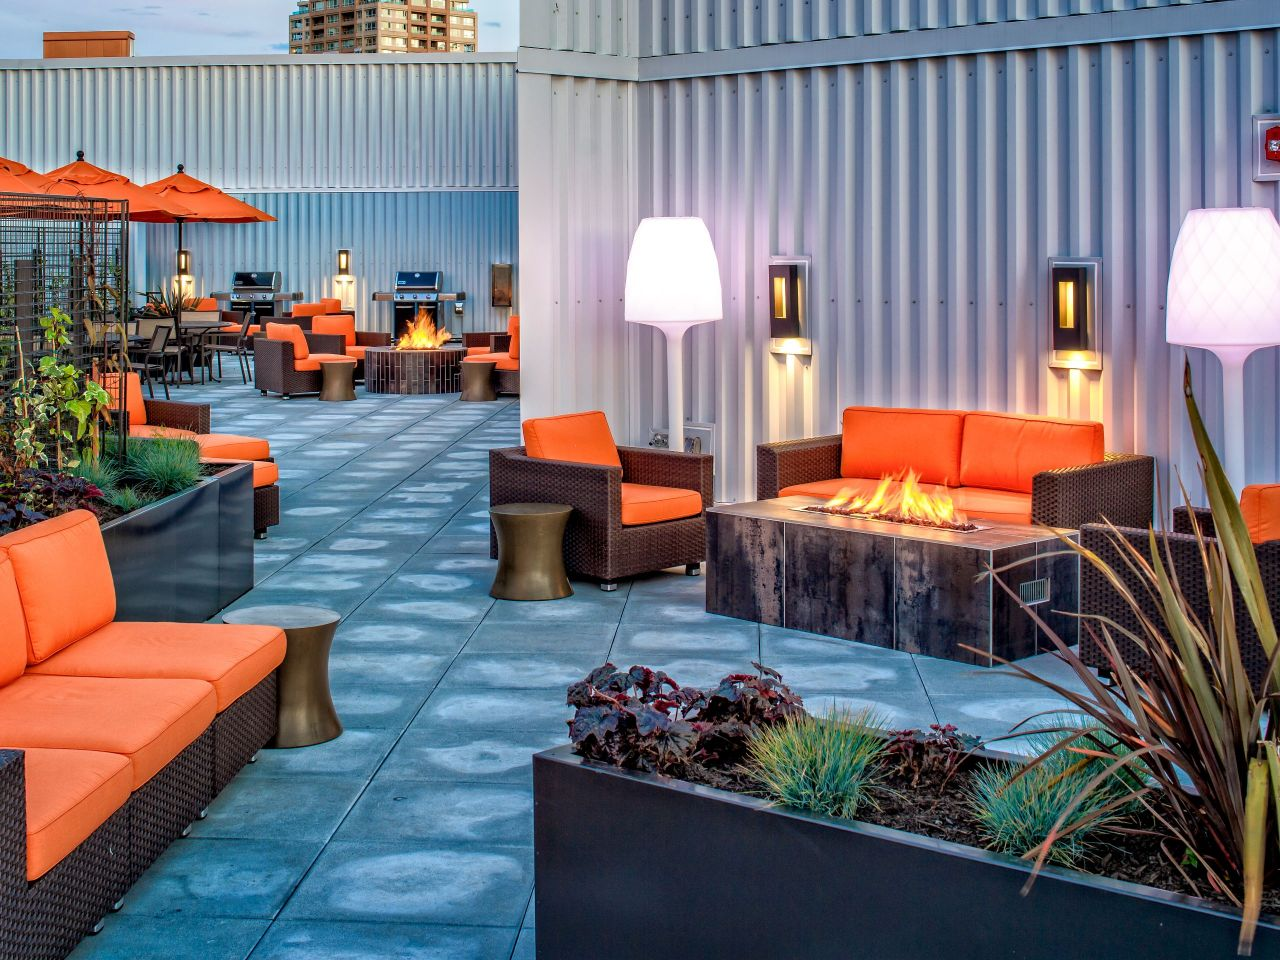 Rooftop Patio seating